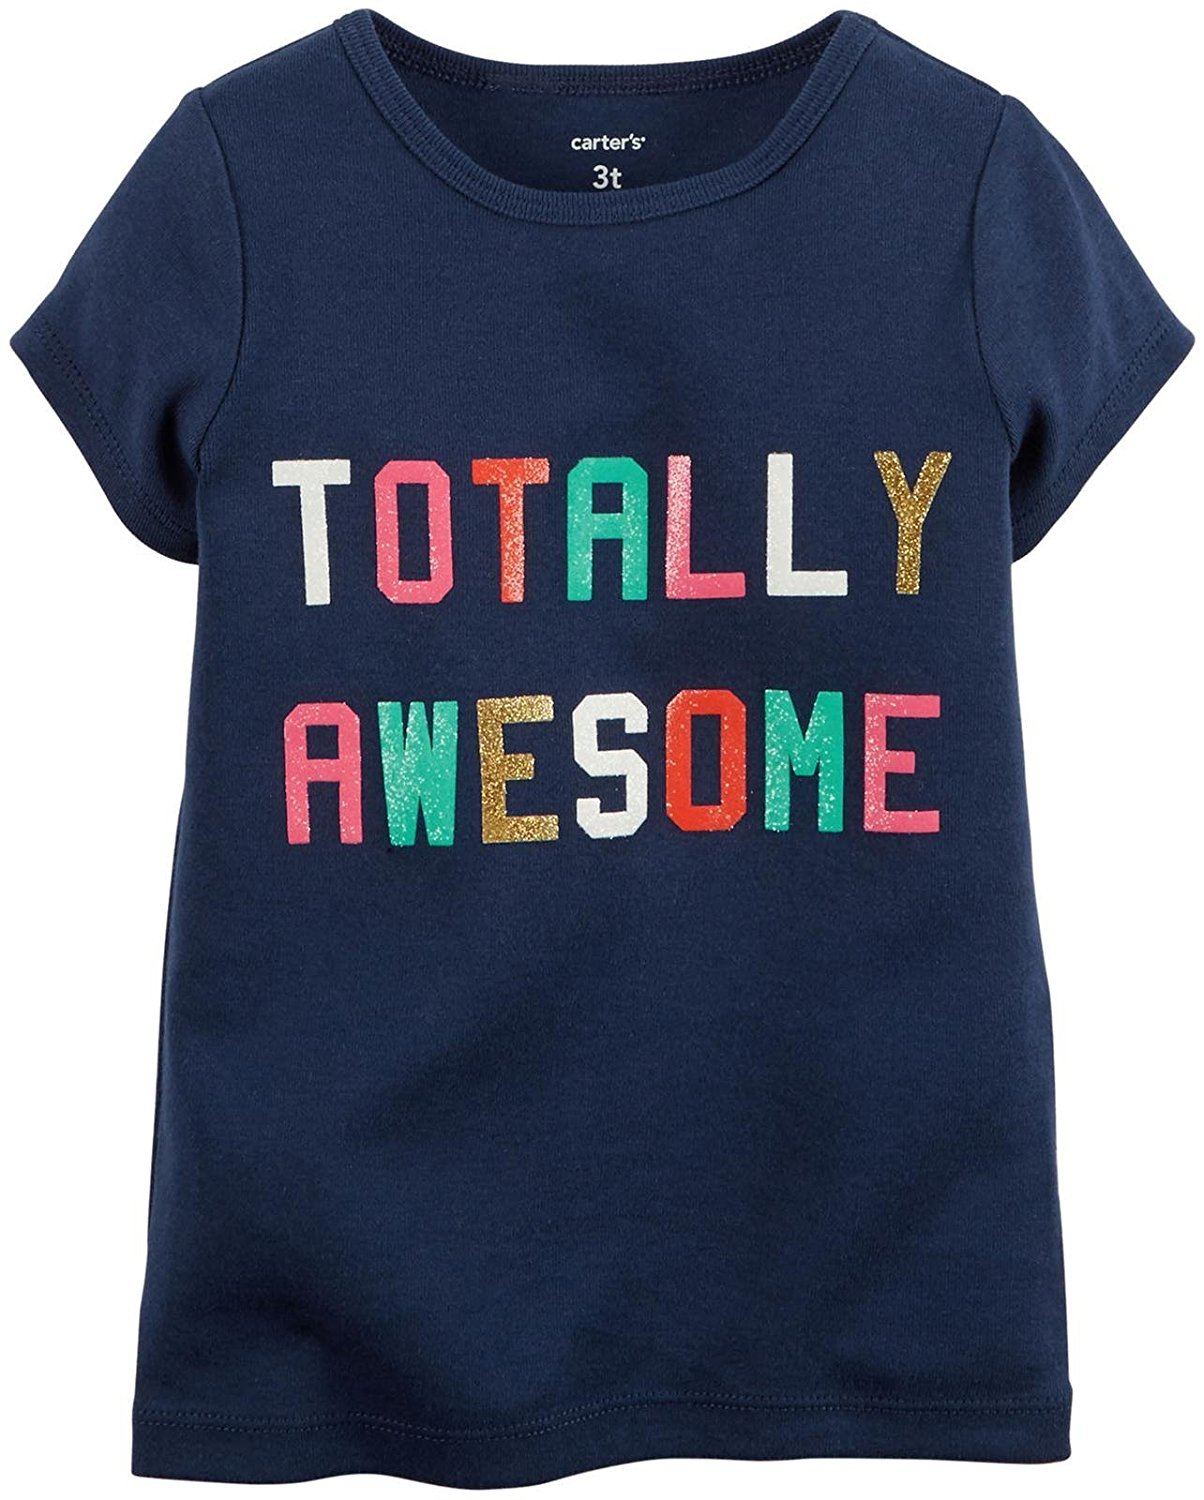 2b157fd92e3 Get Quotations · Carter s Little Girls  Slogan Tee (Toddler Kid) - Totally  Awesome - 5T